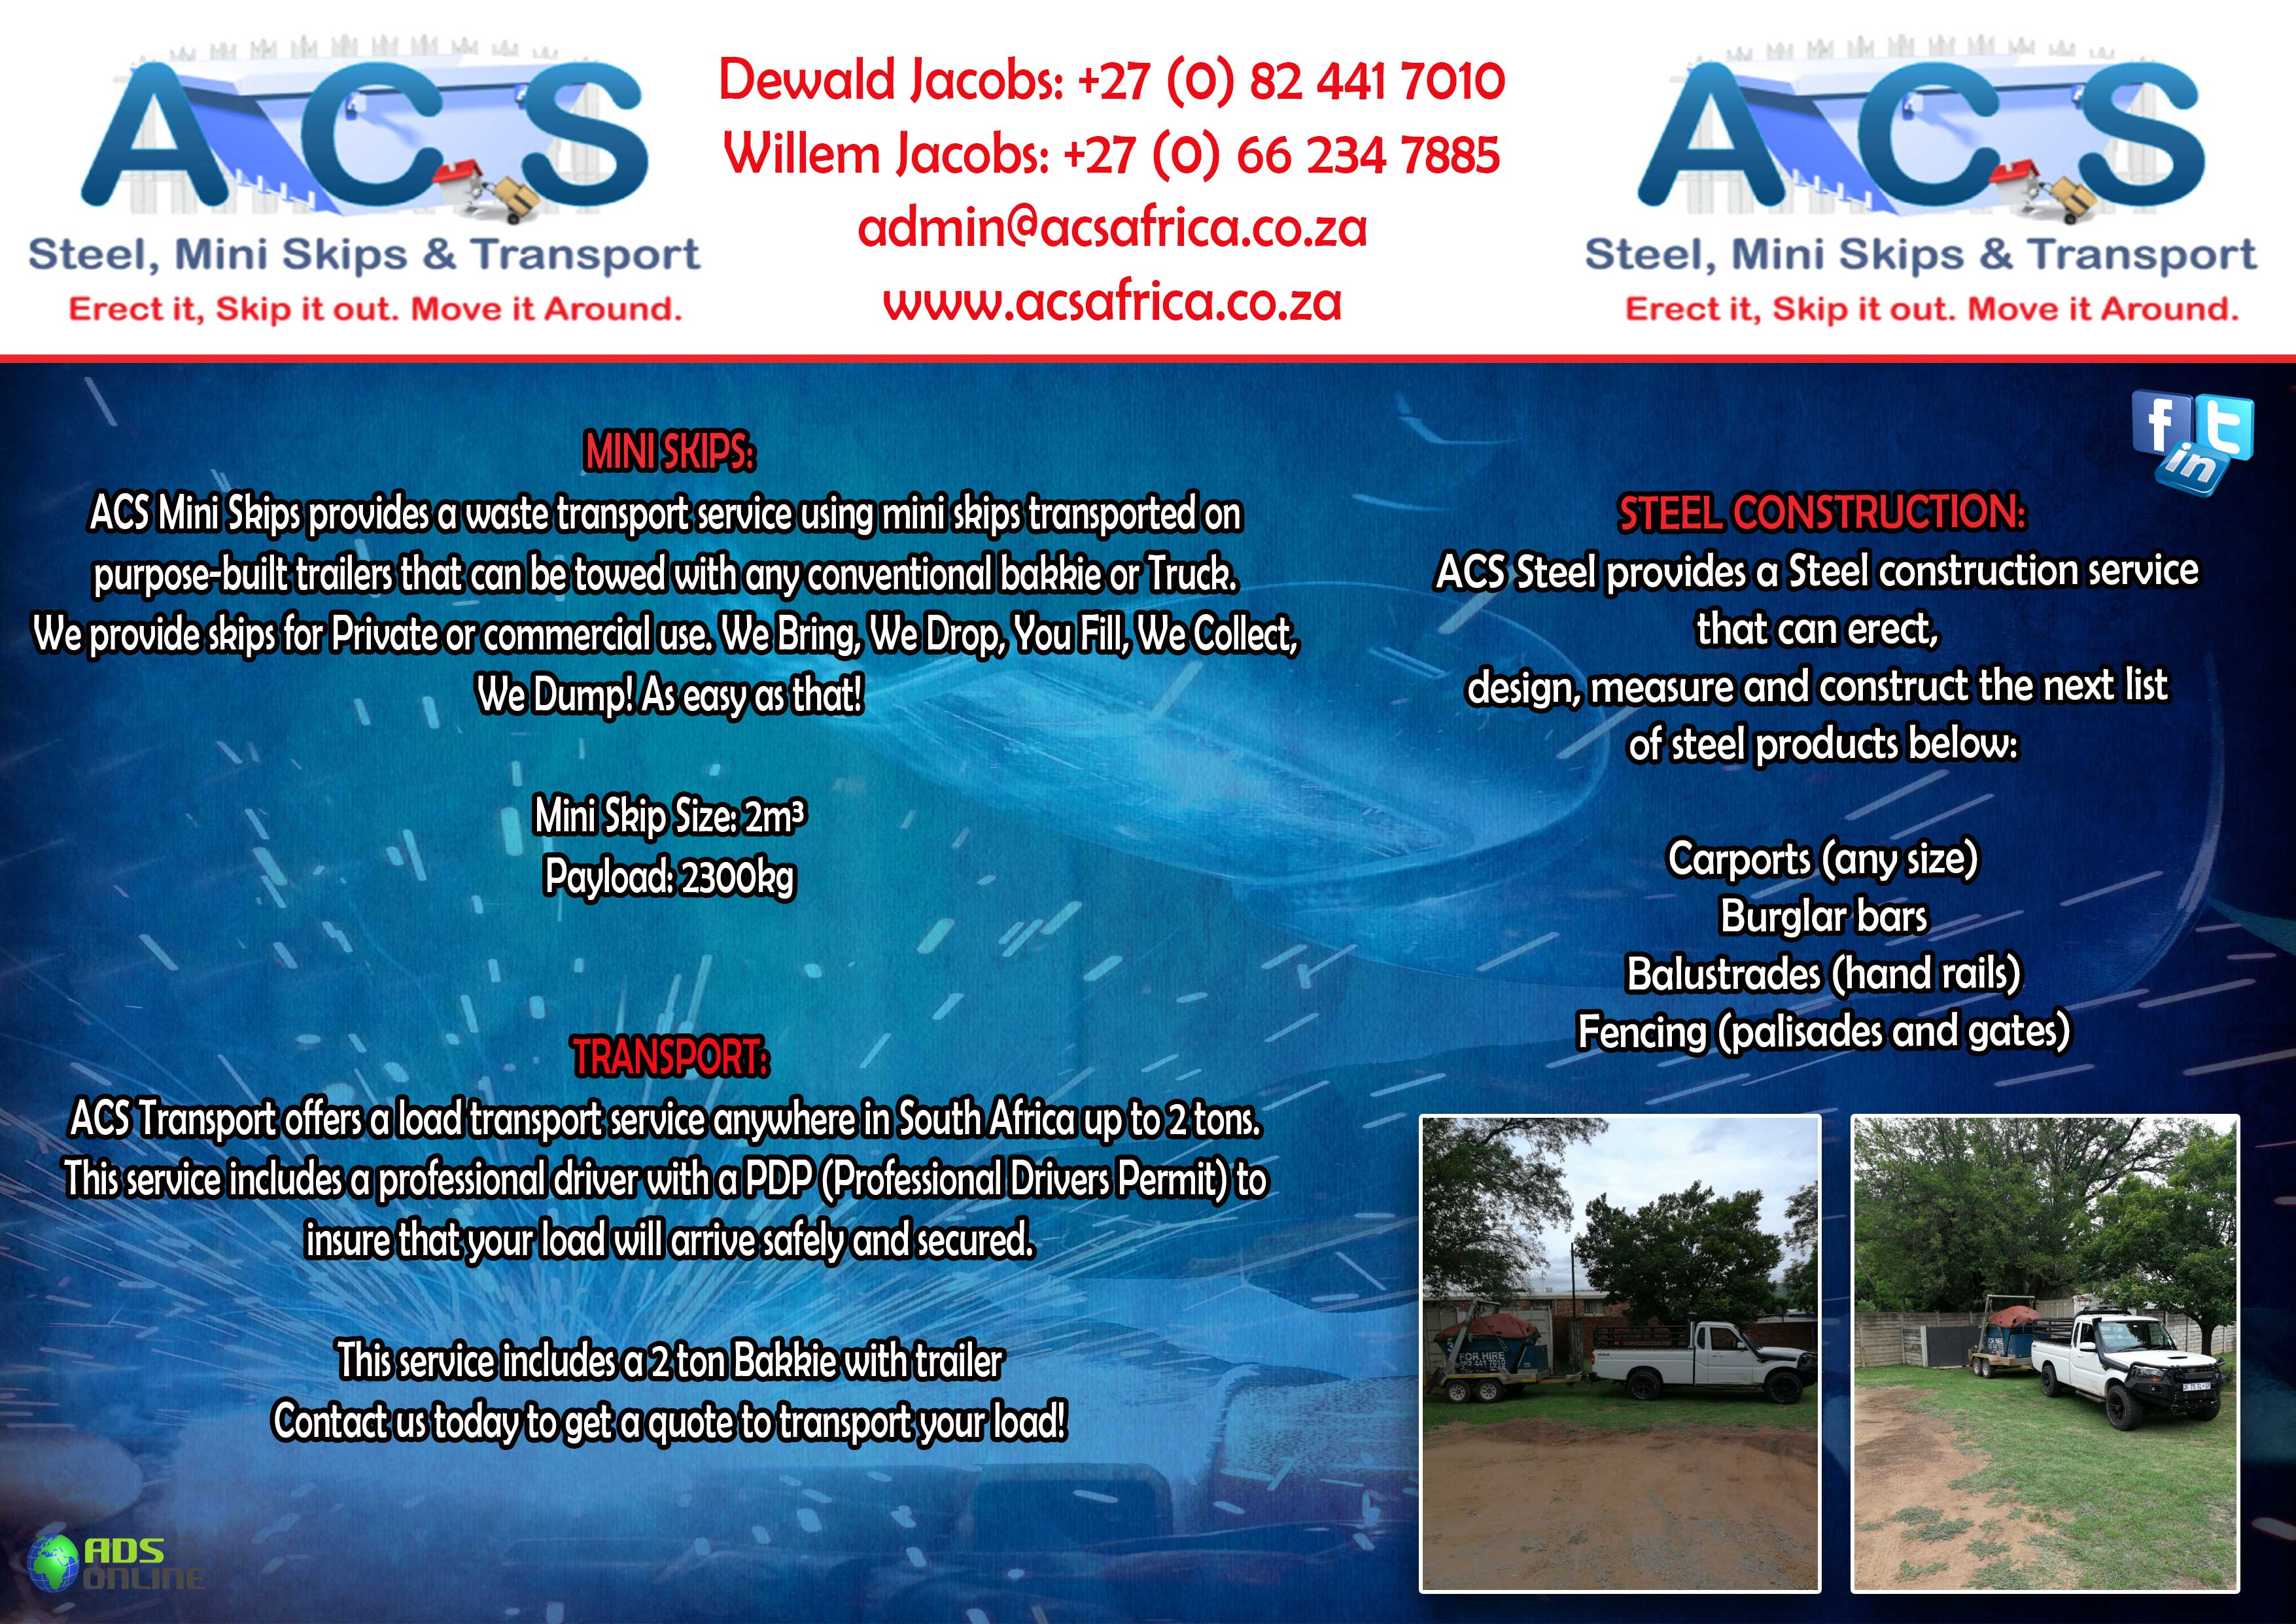 ACS (Steel, Mini Skips & Transport) – Countrywide